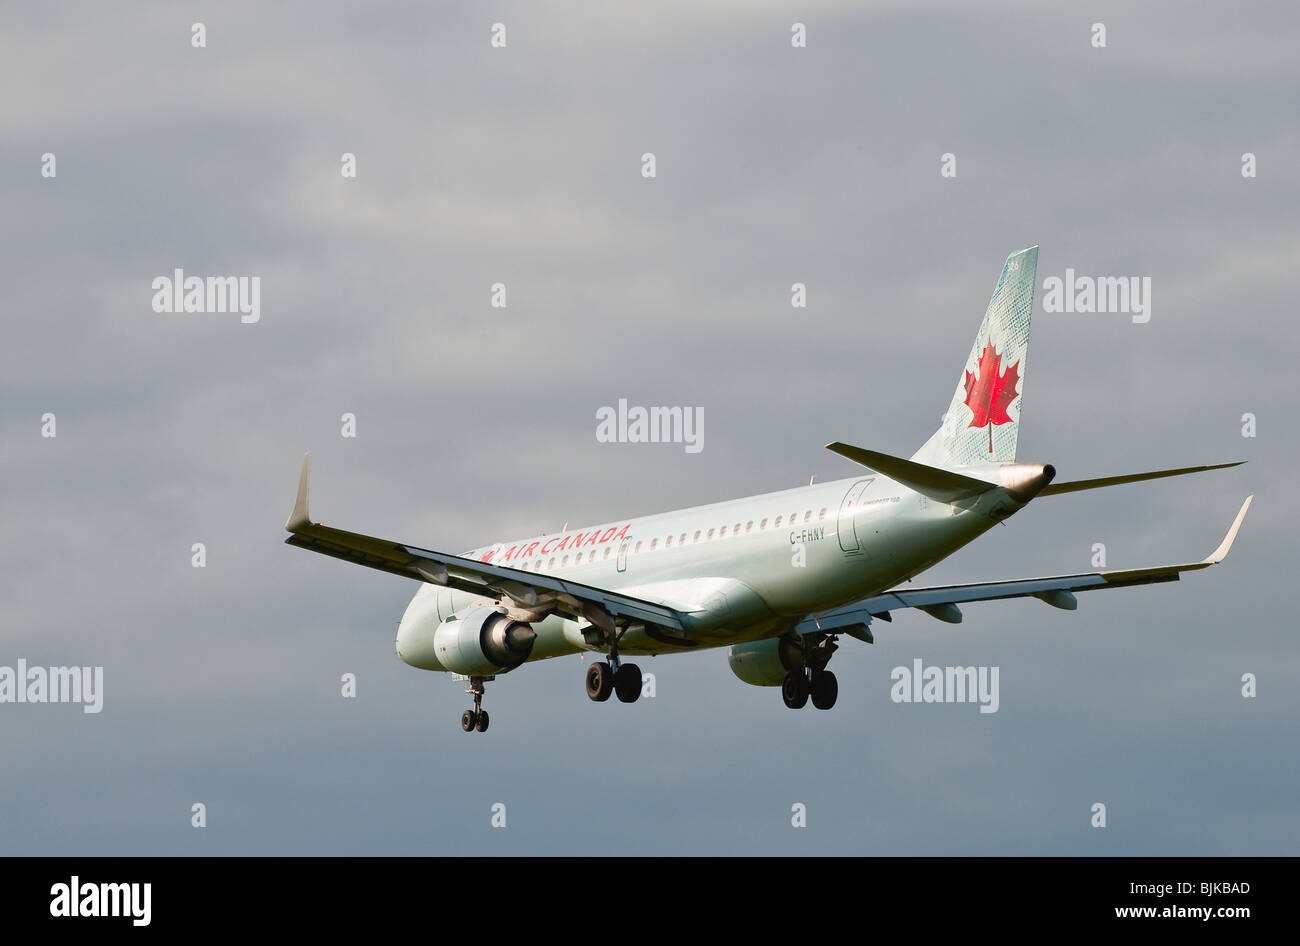 An Air Canada Embraer 190 jet airliner on final approach for landing - Stock Image